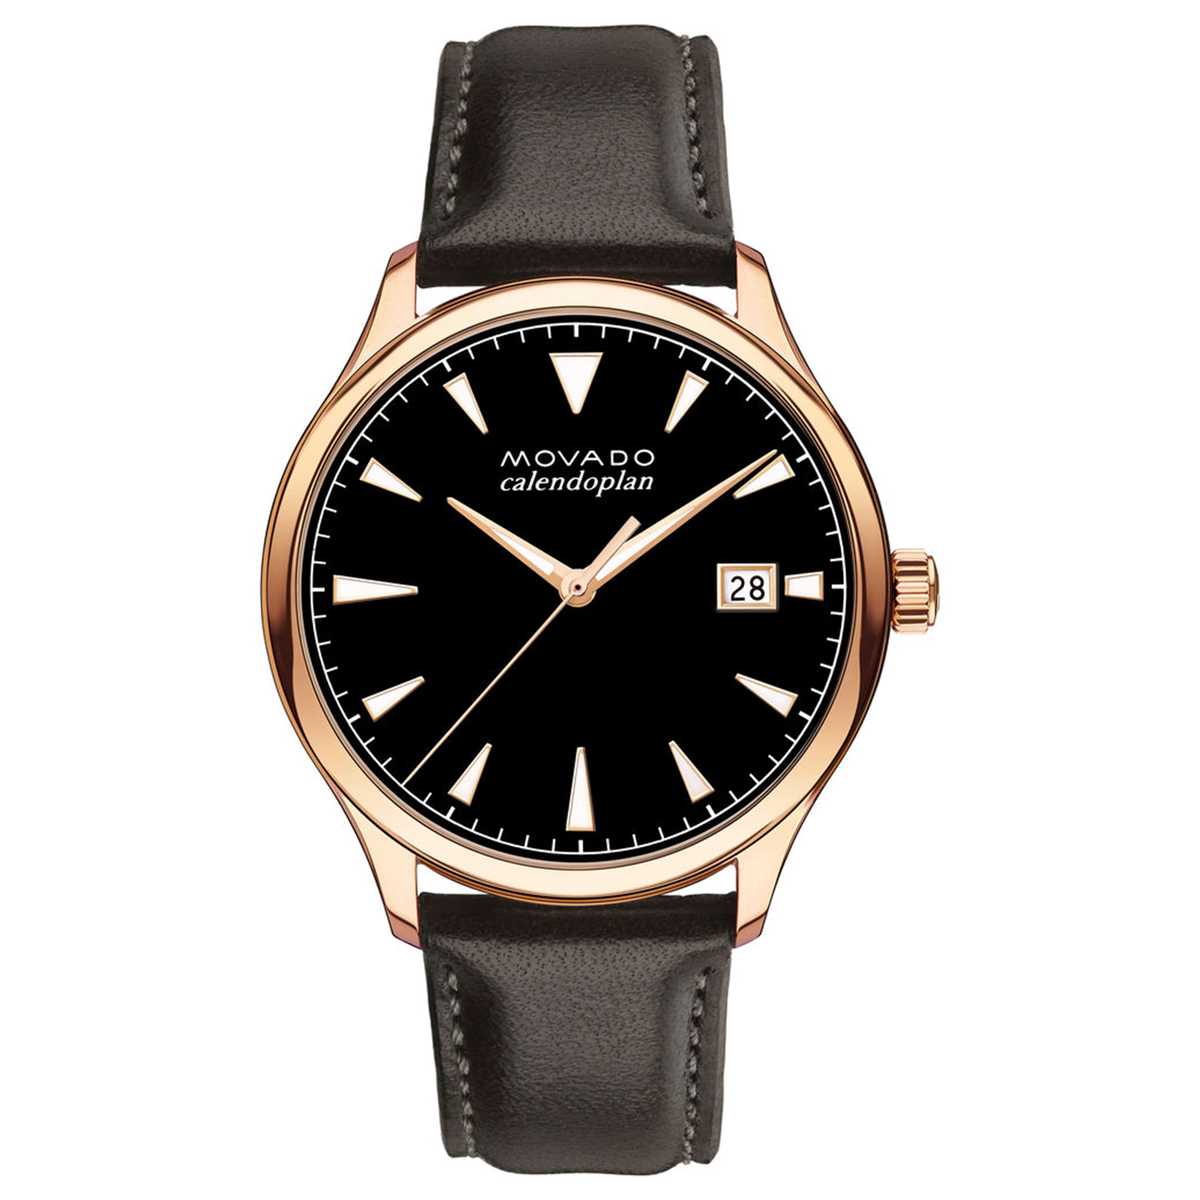 Movado Watch Heritage Series - Calendoplan Rose Gold Tone